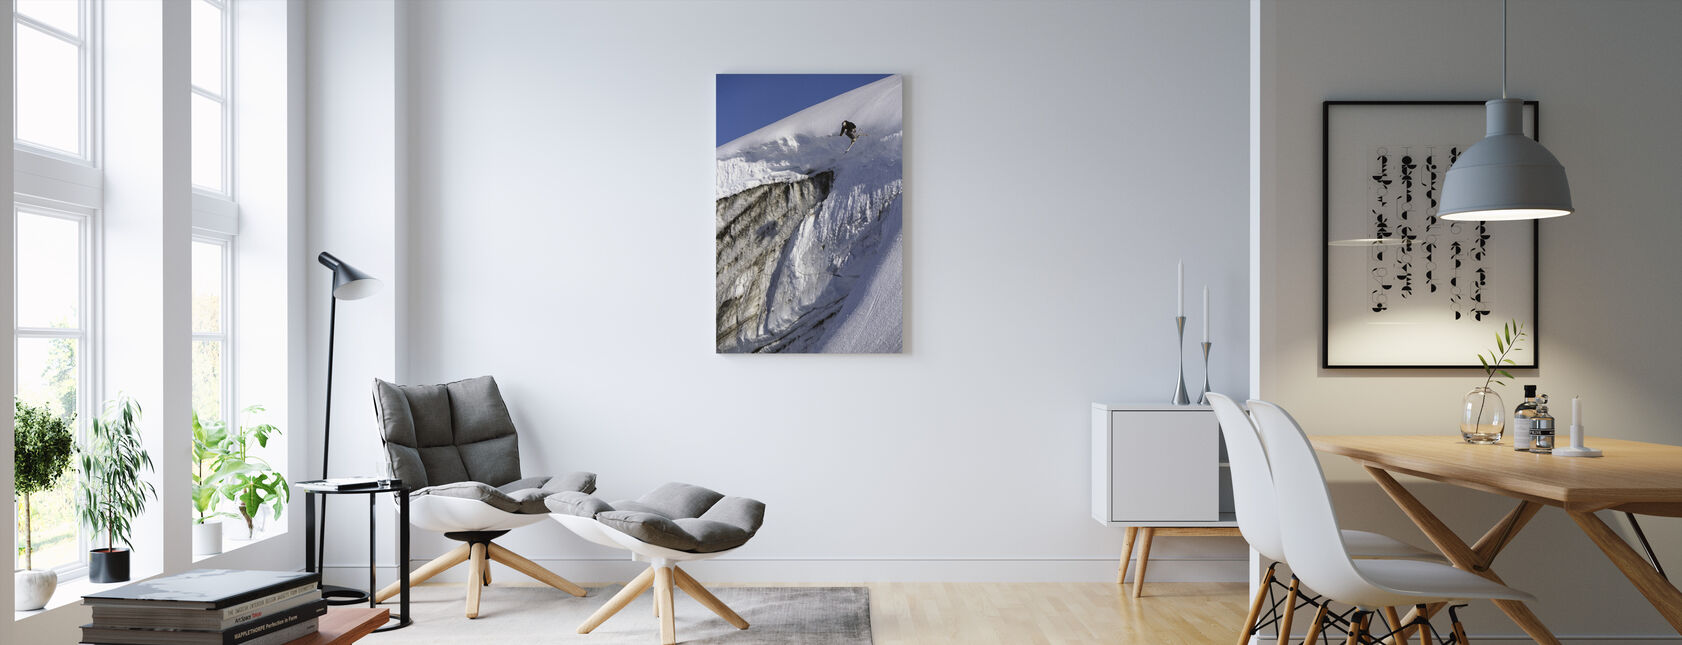 Skiing on the Apussuit Glacier - Canvas print - Living Room